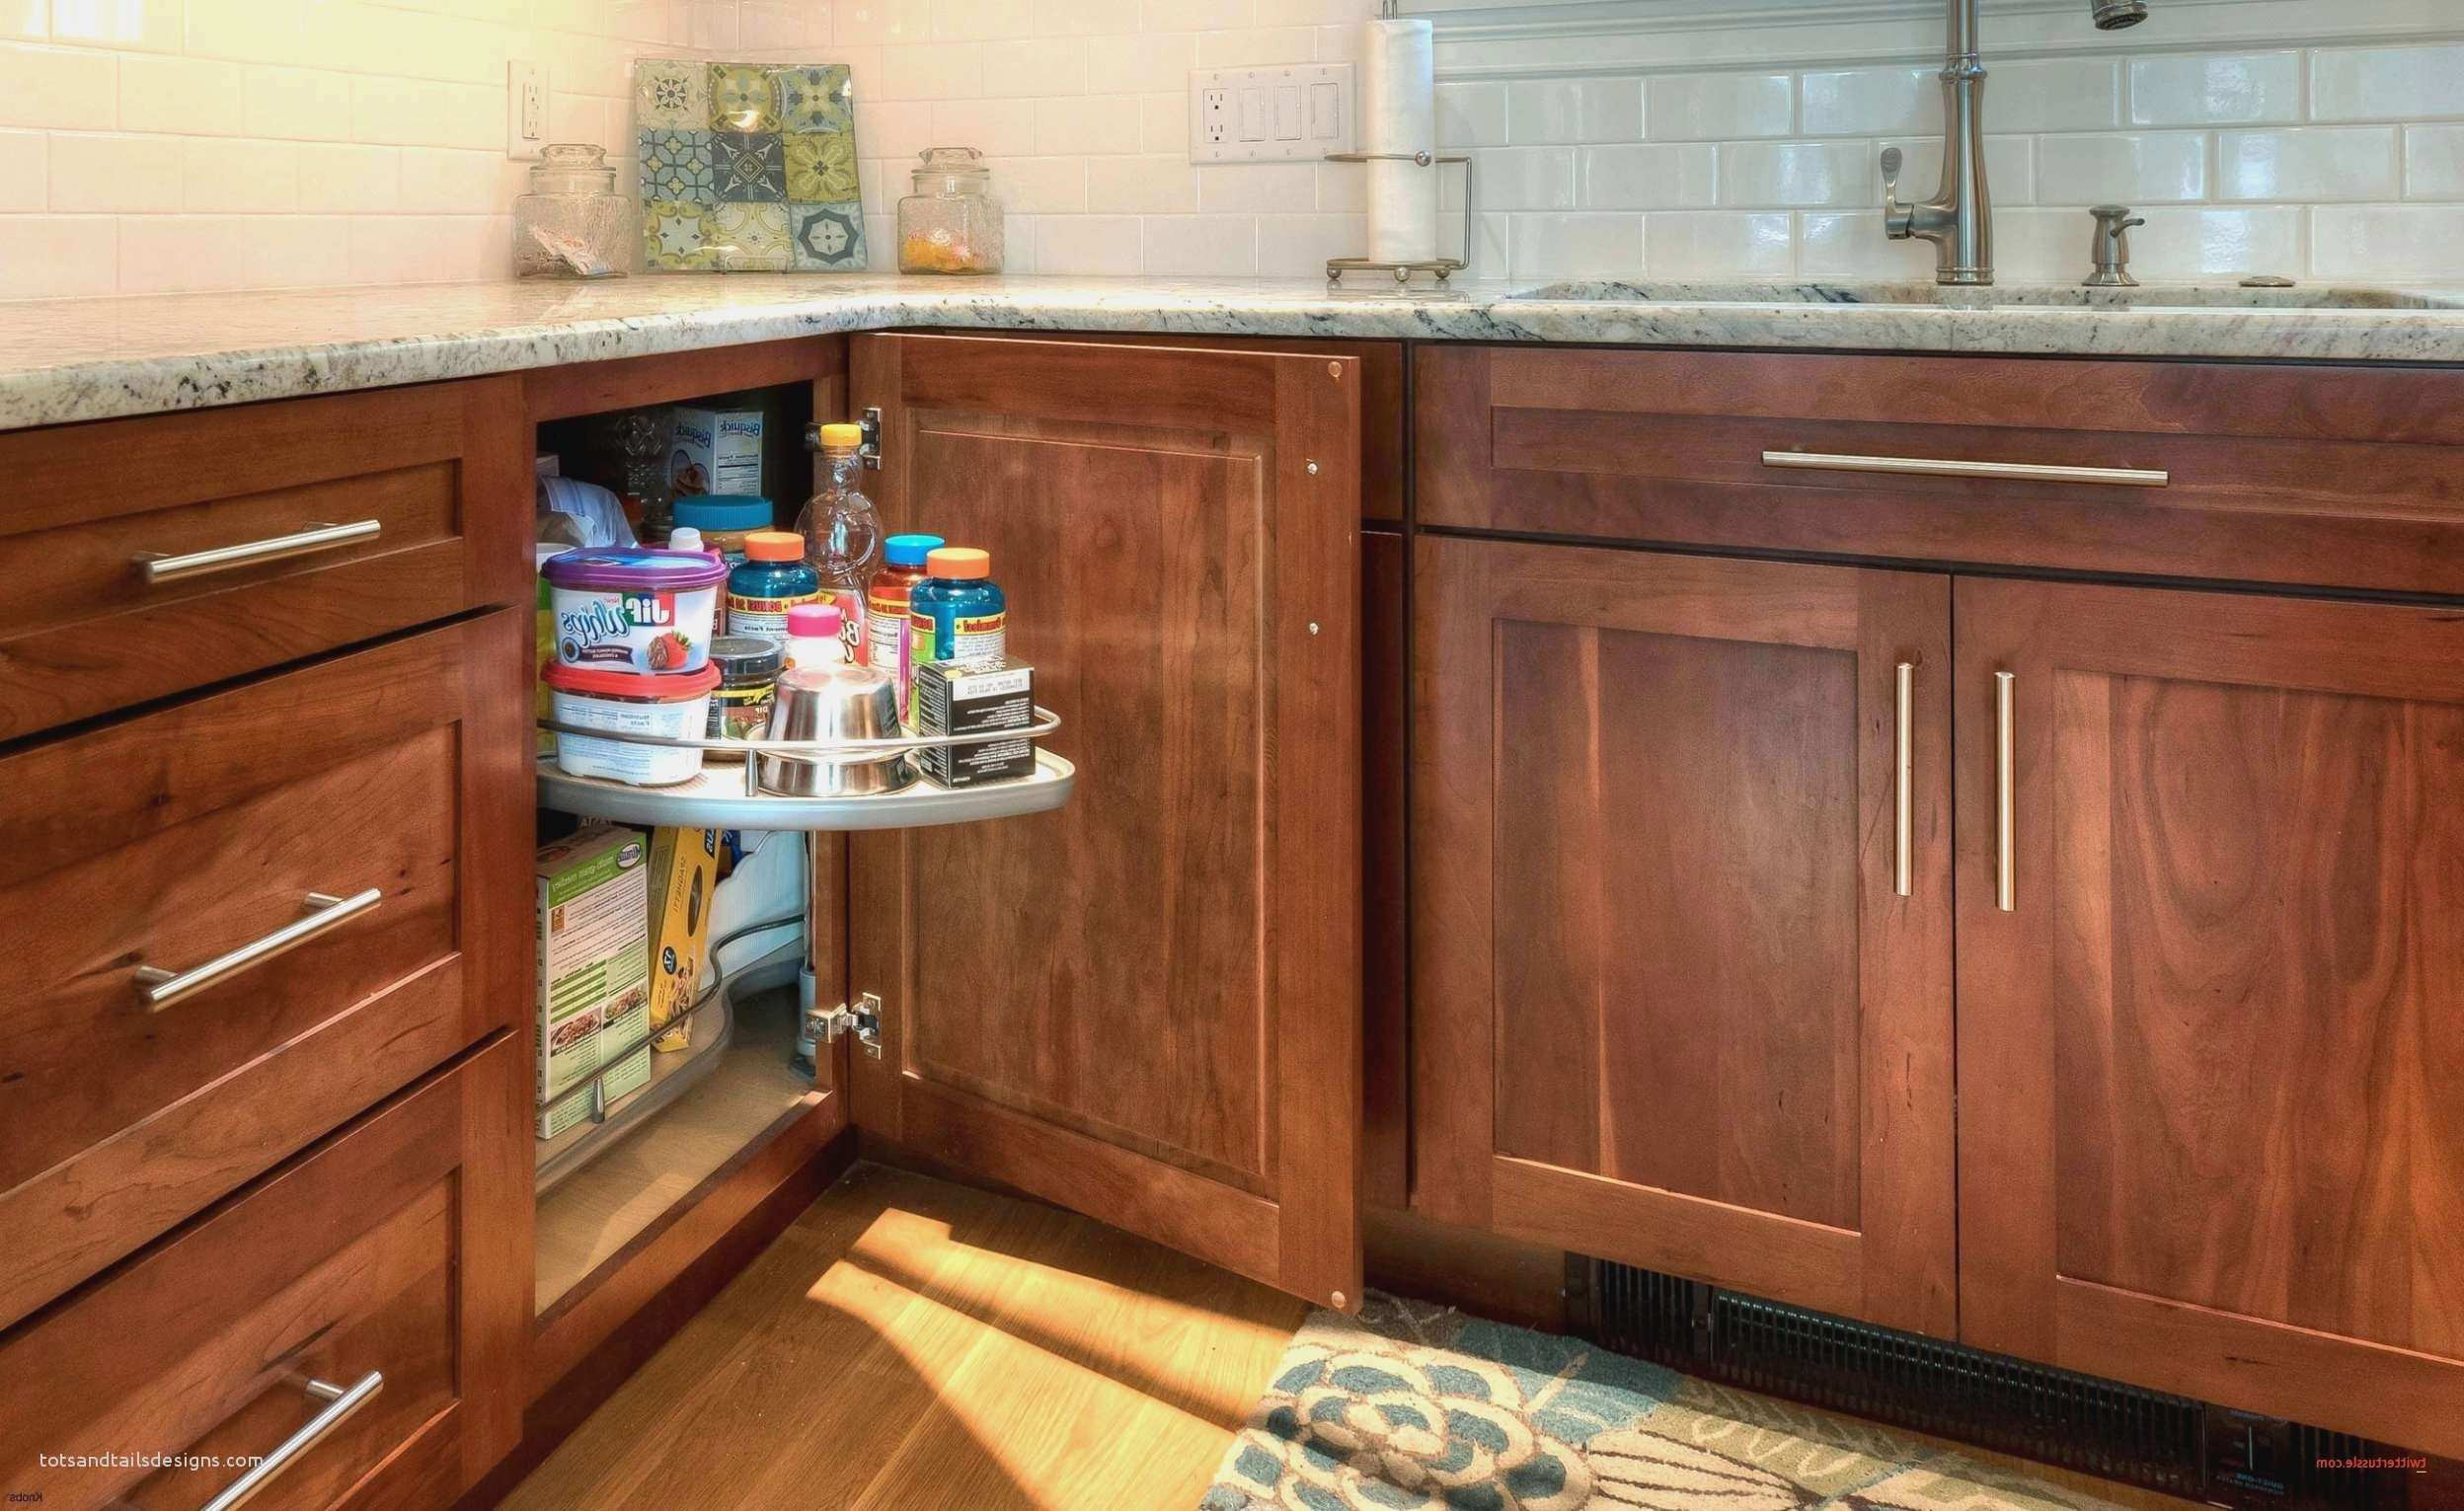 hardwood flooring clearance closeout of closeout bathroom vanities near me unique discount bathroom cabinets regarding closeout bathroom vanities near me unique discount kitchen cabinets unique bathroom cabinet door replacement